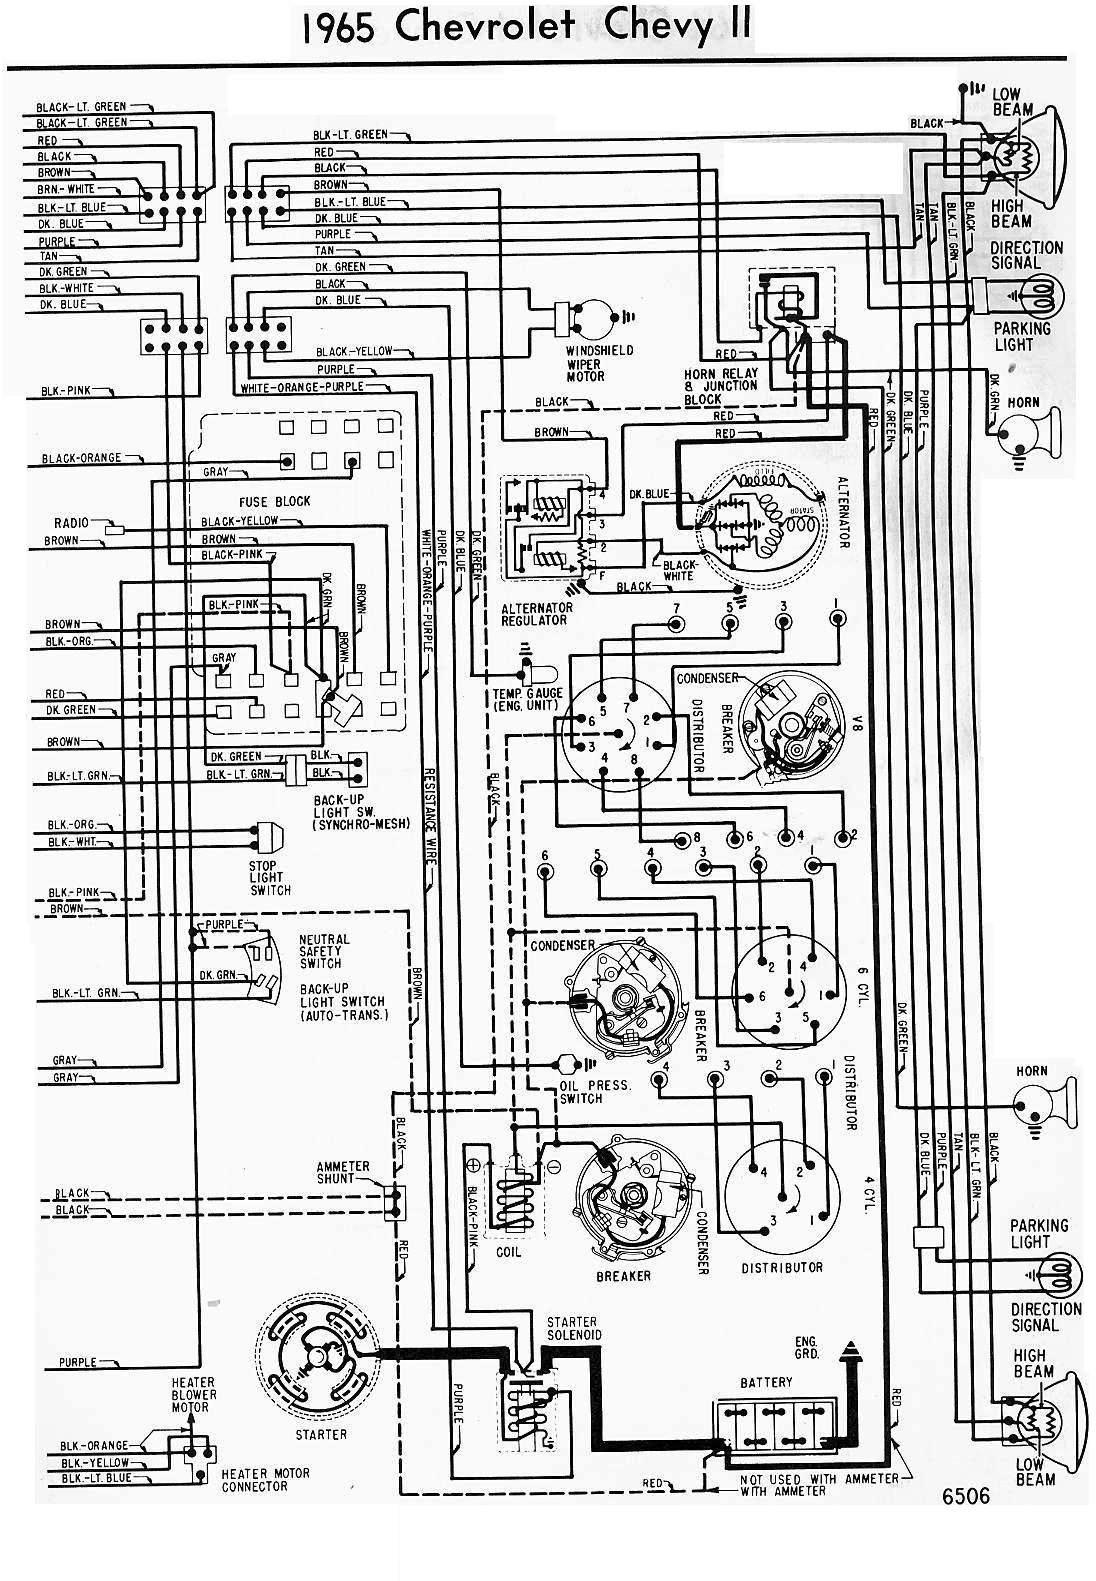 1966 impala wiring schematic wiring library1965 chevrolet chevy ii wiring diagram [ 1096 x 1581 Pixel ]